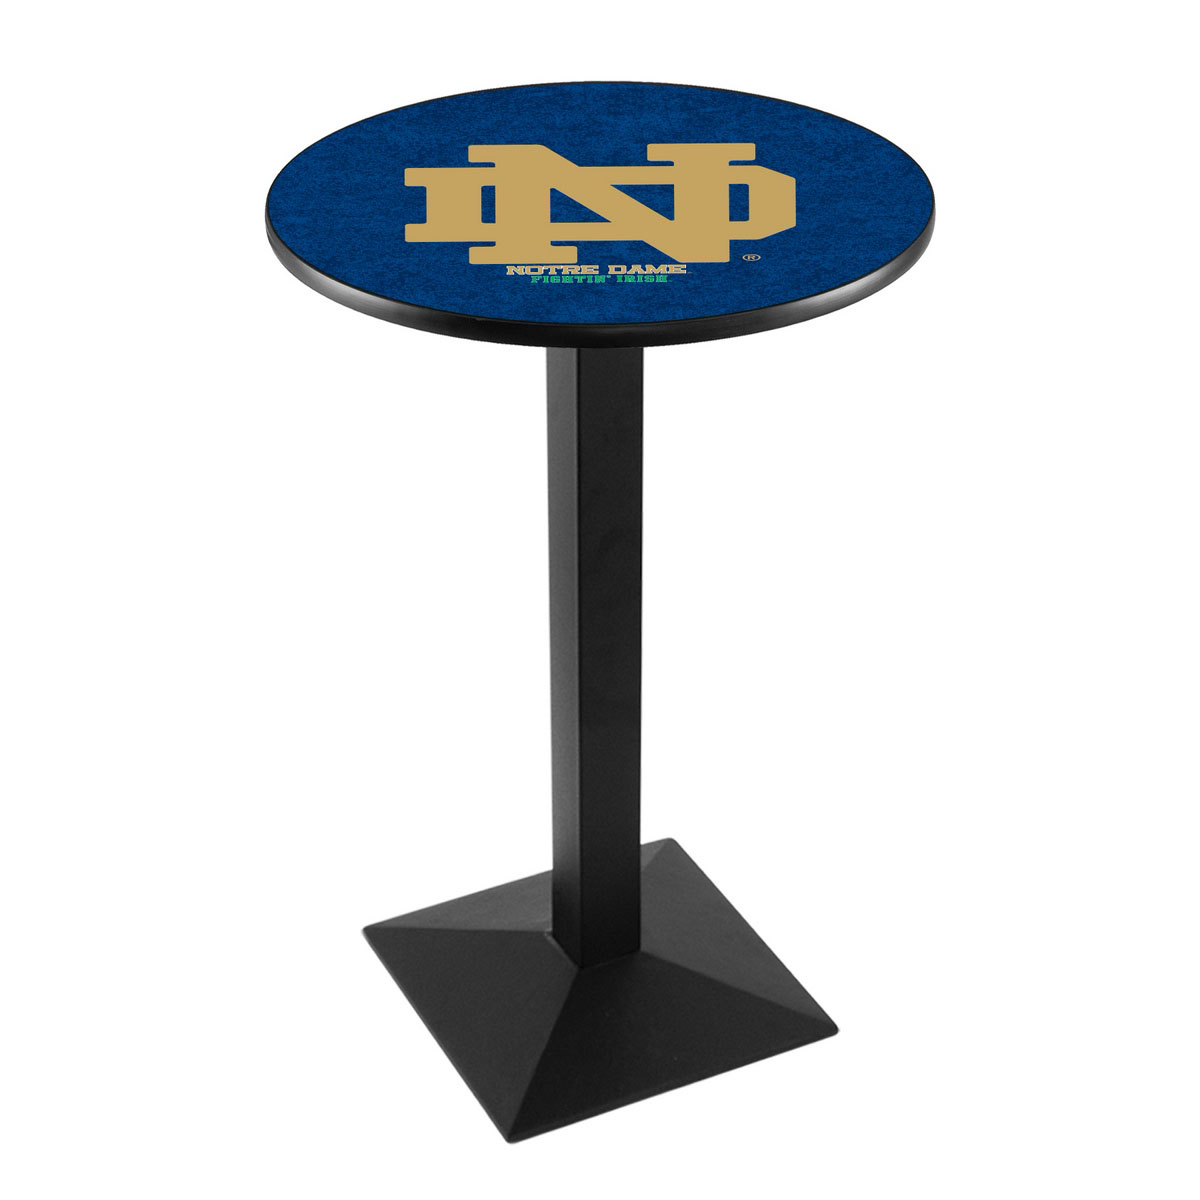 Impressive Notre Dame Nd Logo Pub Bar Table Square Stand Product Photo